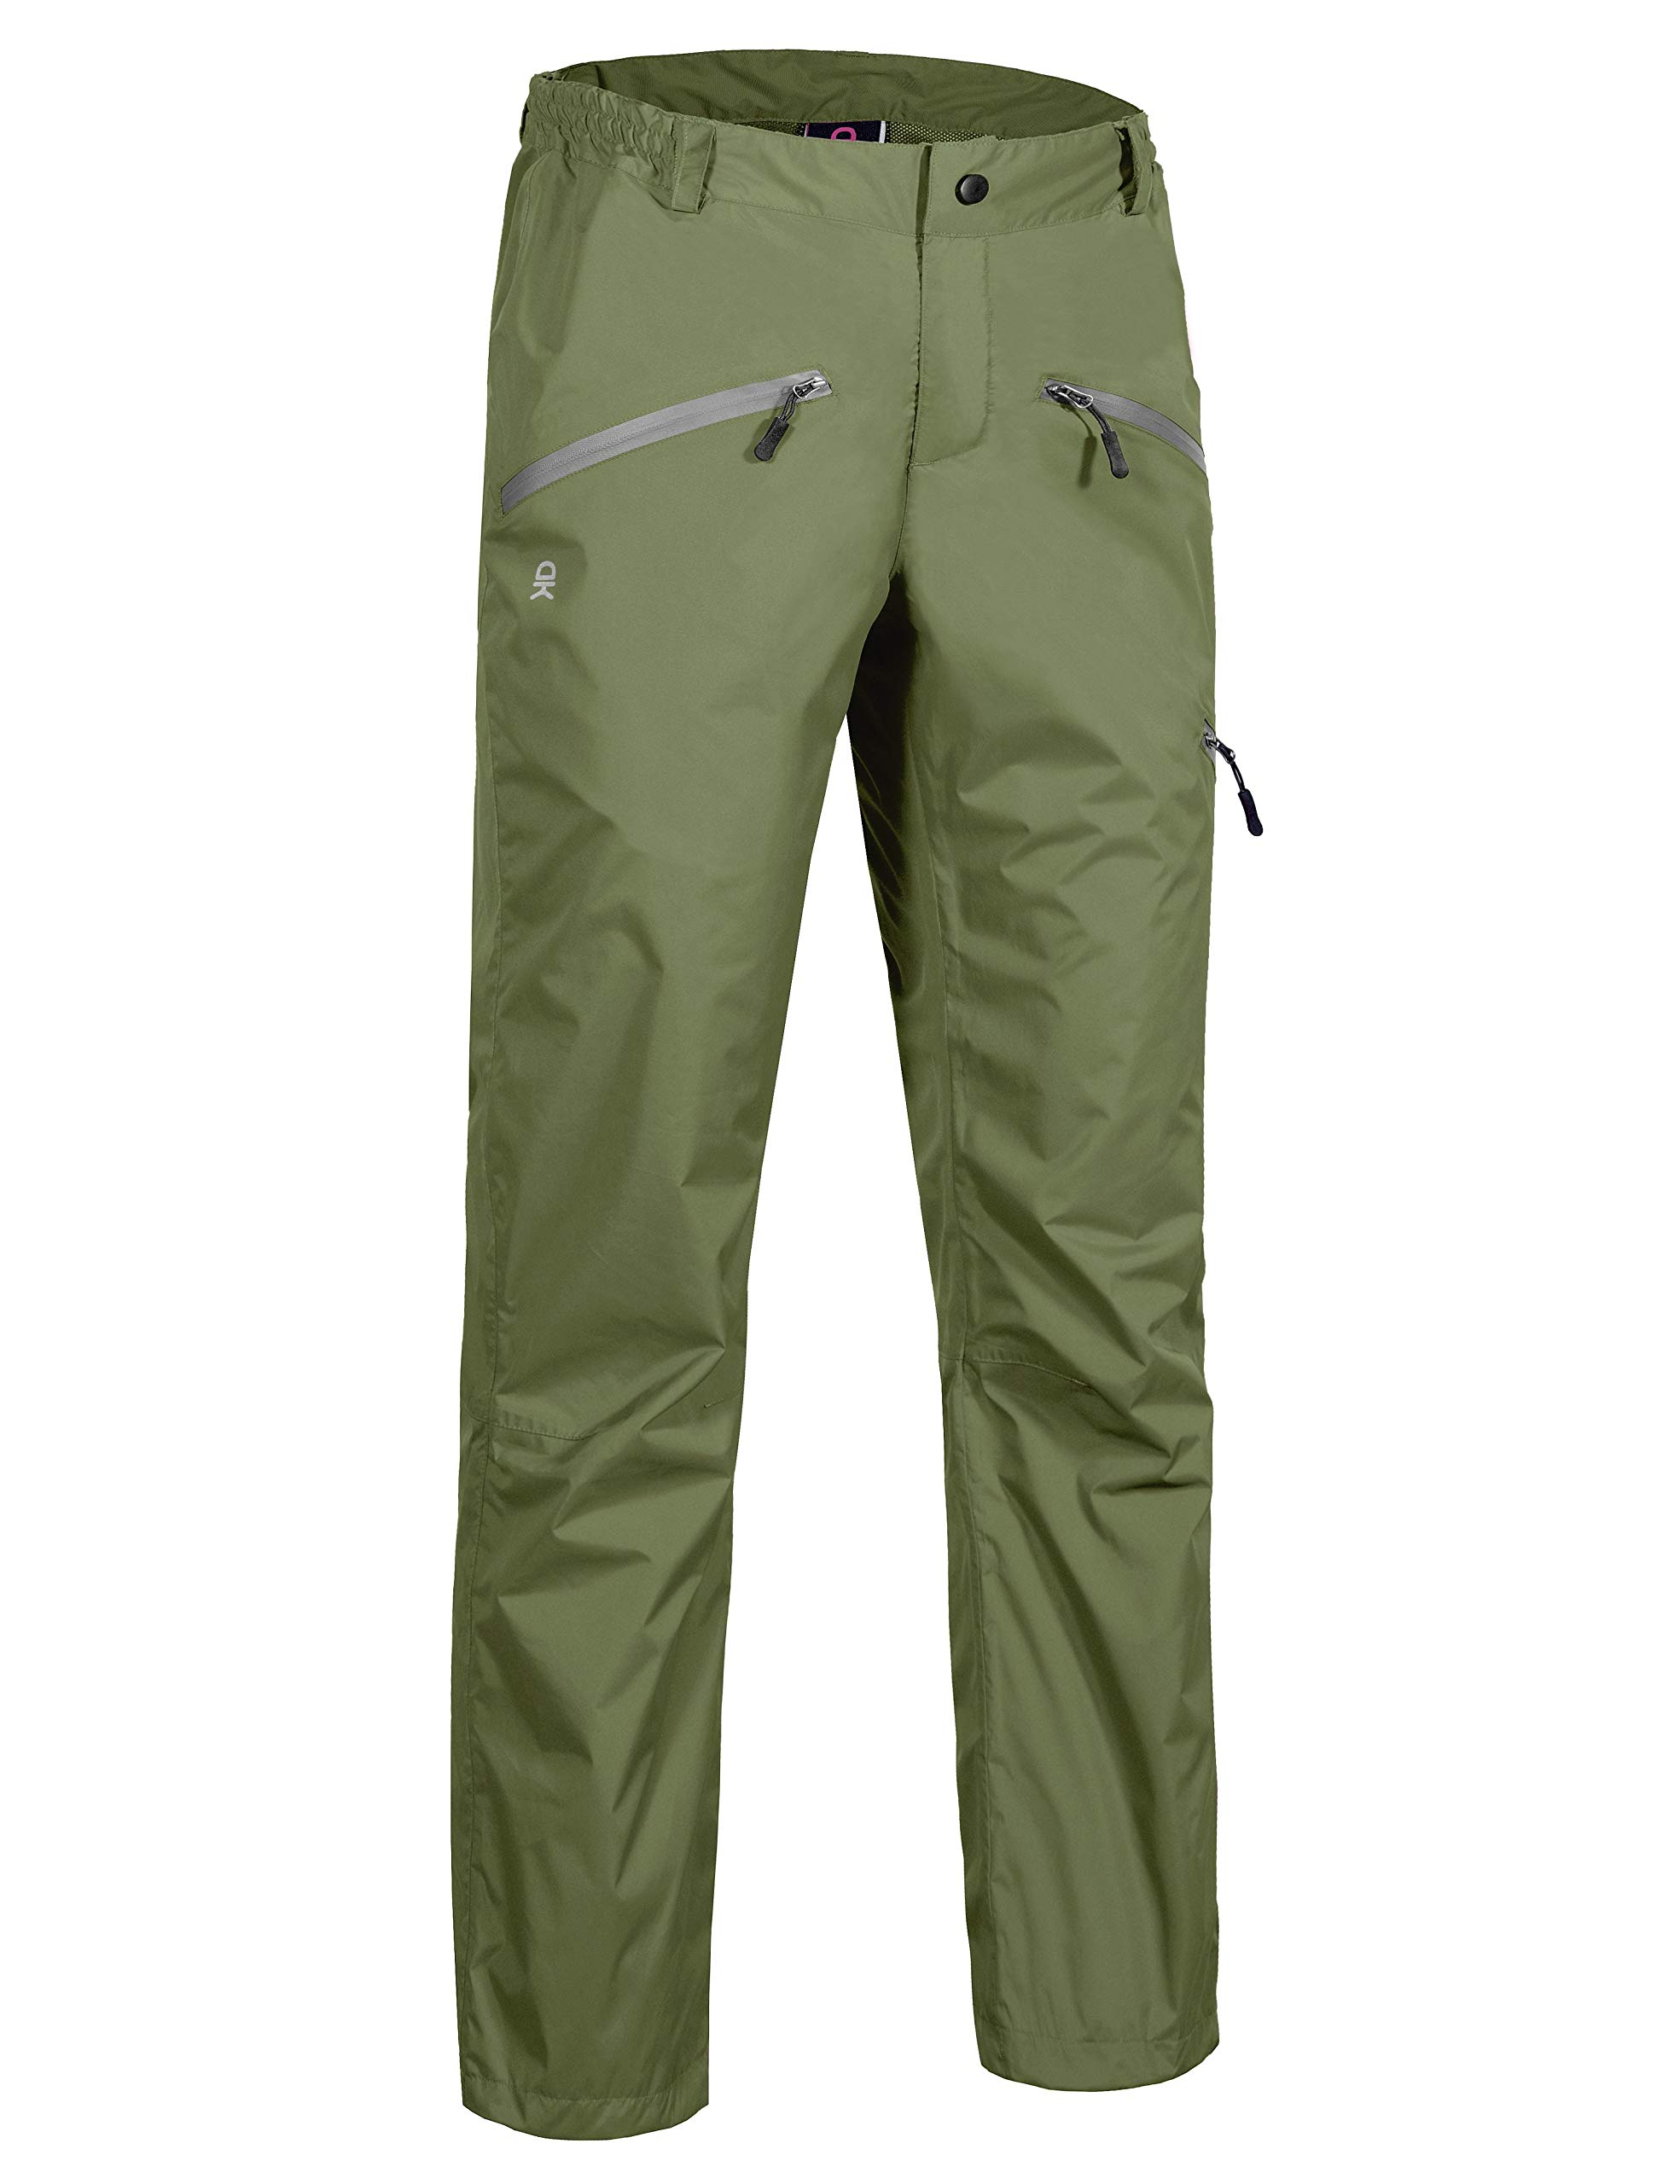 Little Donkey Andy Women's Waterproof Rain Pants Olive Size L by Little Donkey Andy